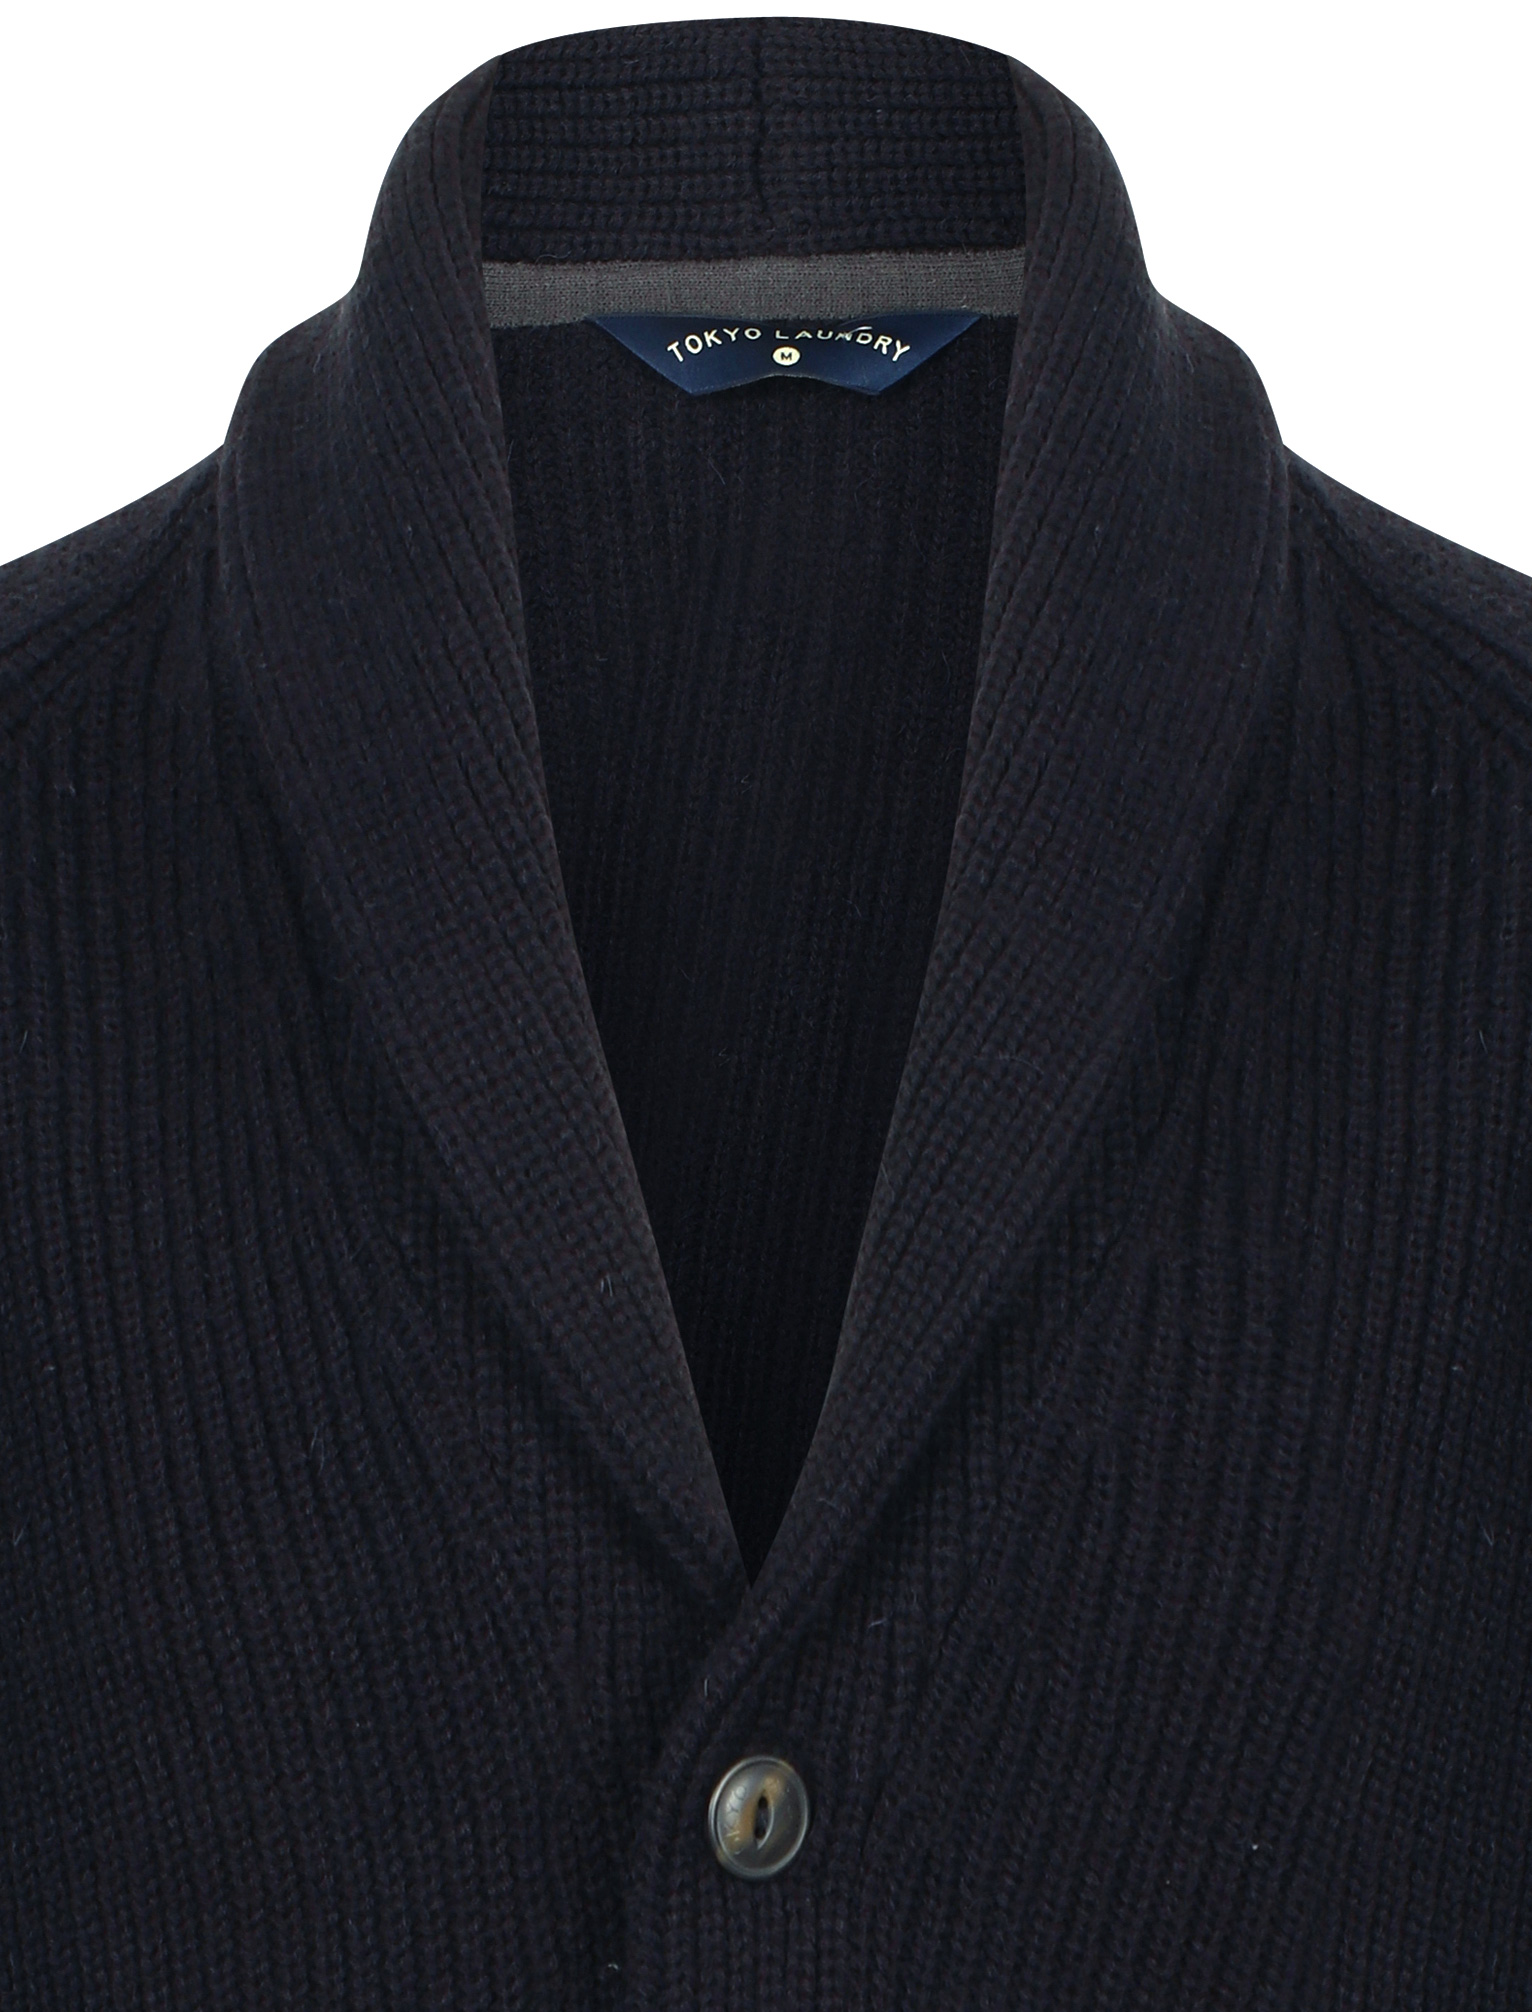 New-Mens-Tokyo-Laundry-Shawl-Neck-Long-Sleeve-Wool-Blend-Cardigans-Size-S-XXL thumbnail 4